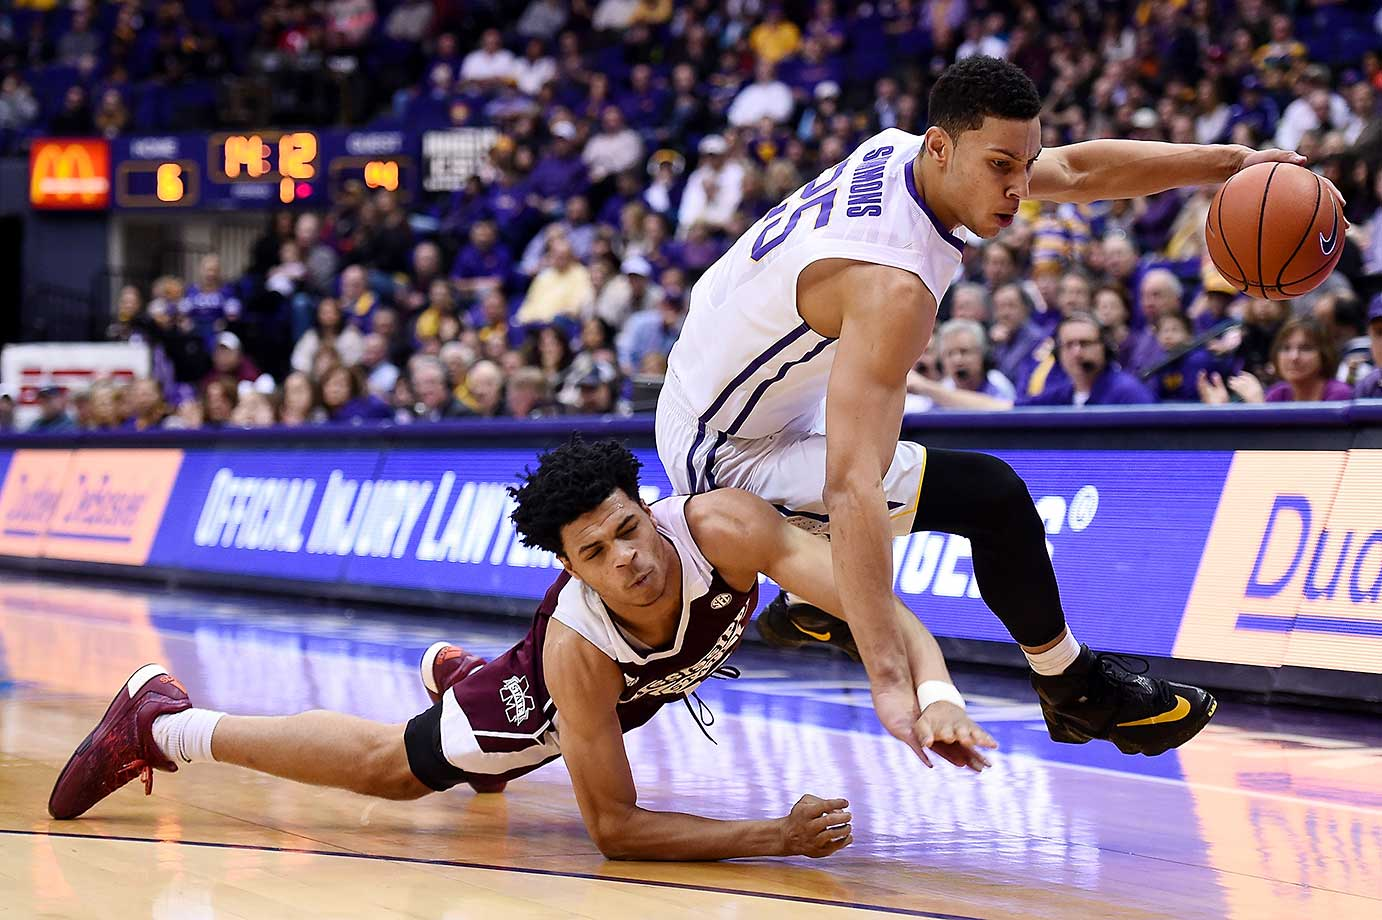 Ben Simmons of LSU is fouled by Quinndary Weatherspoon of Mississippi Statein Baton Rouge.